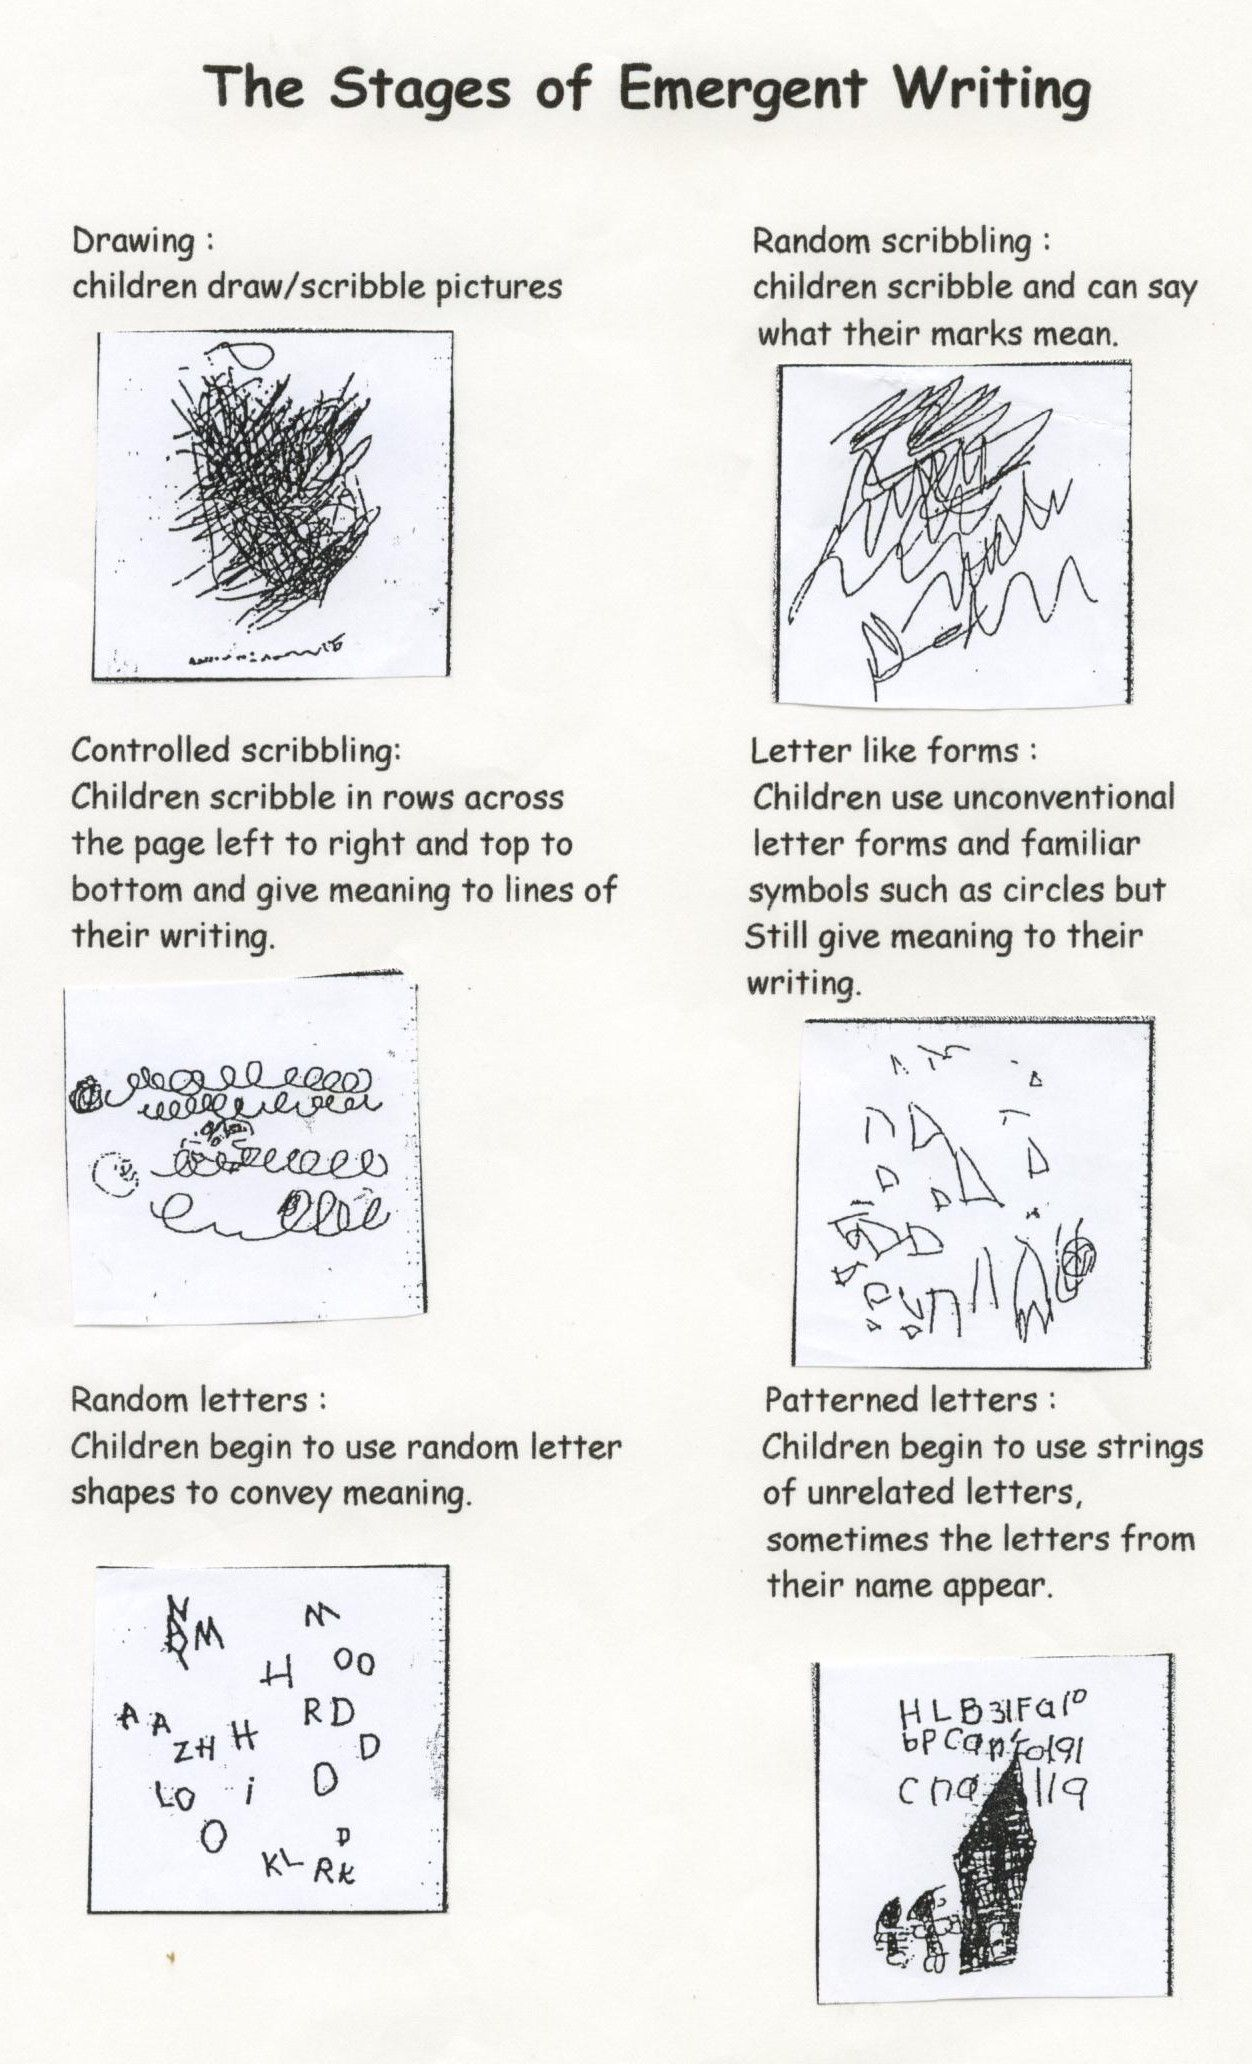 Emergent Writing Visual With Explanation Great Explanation For Parents Now I Need To Find It In